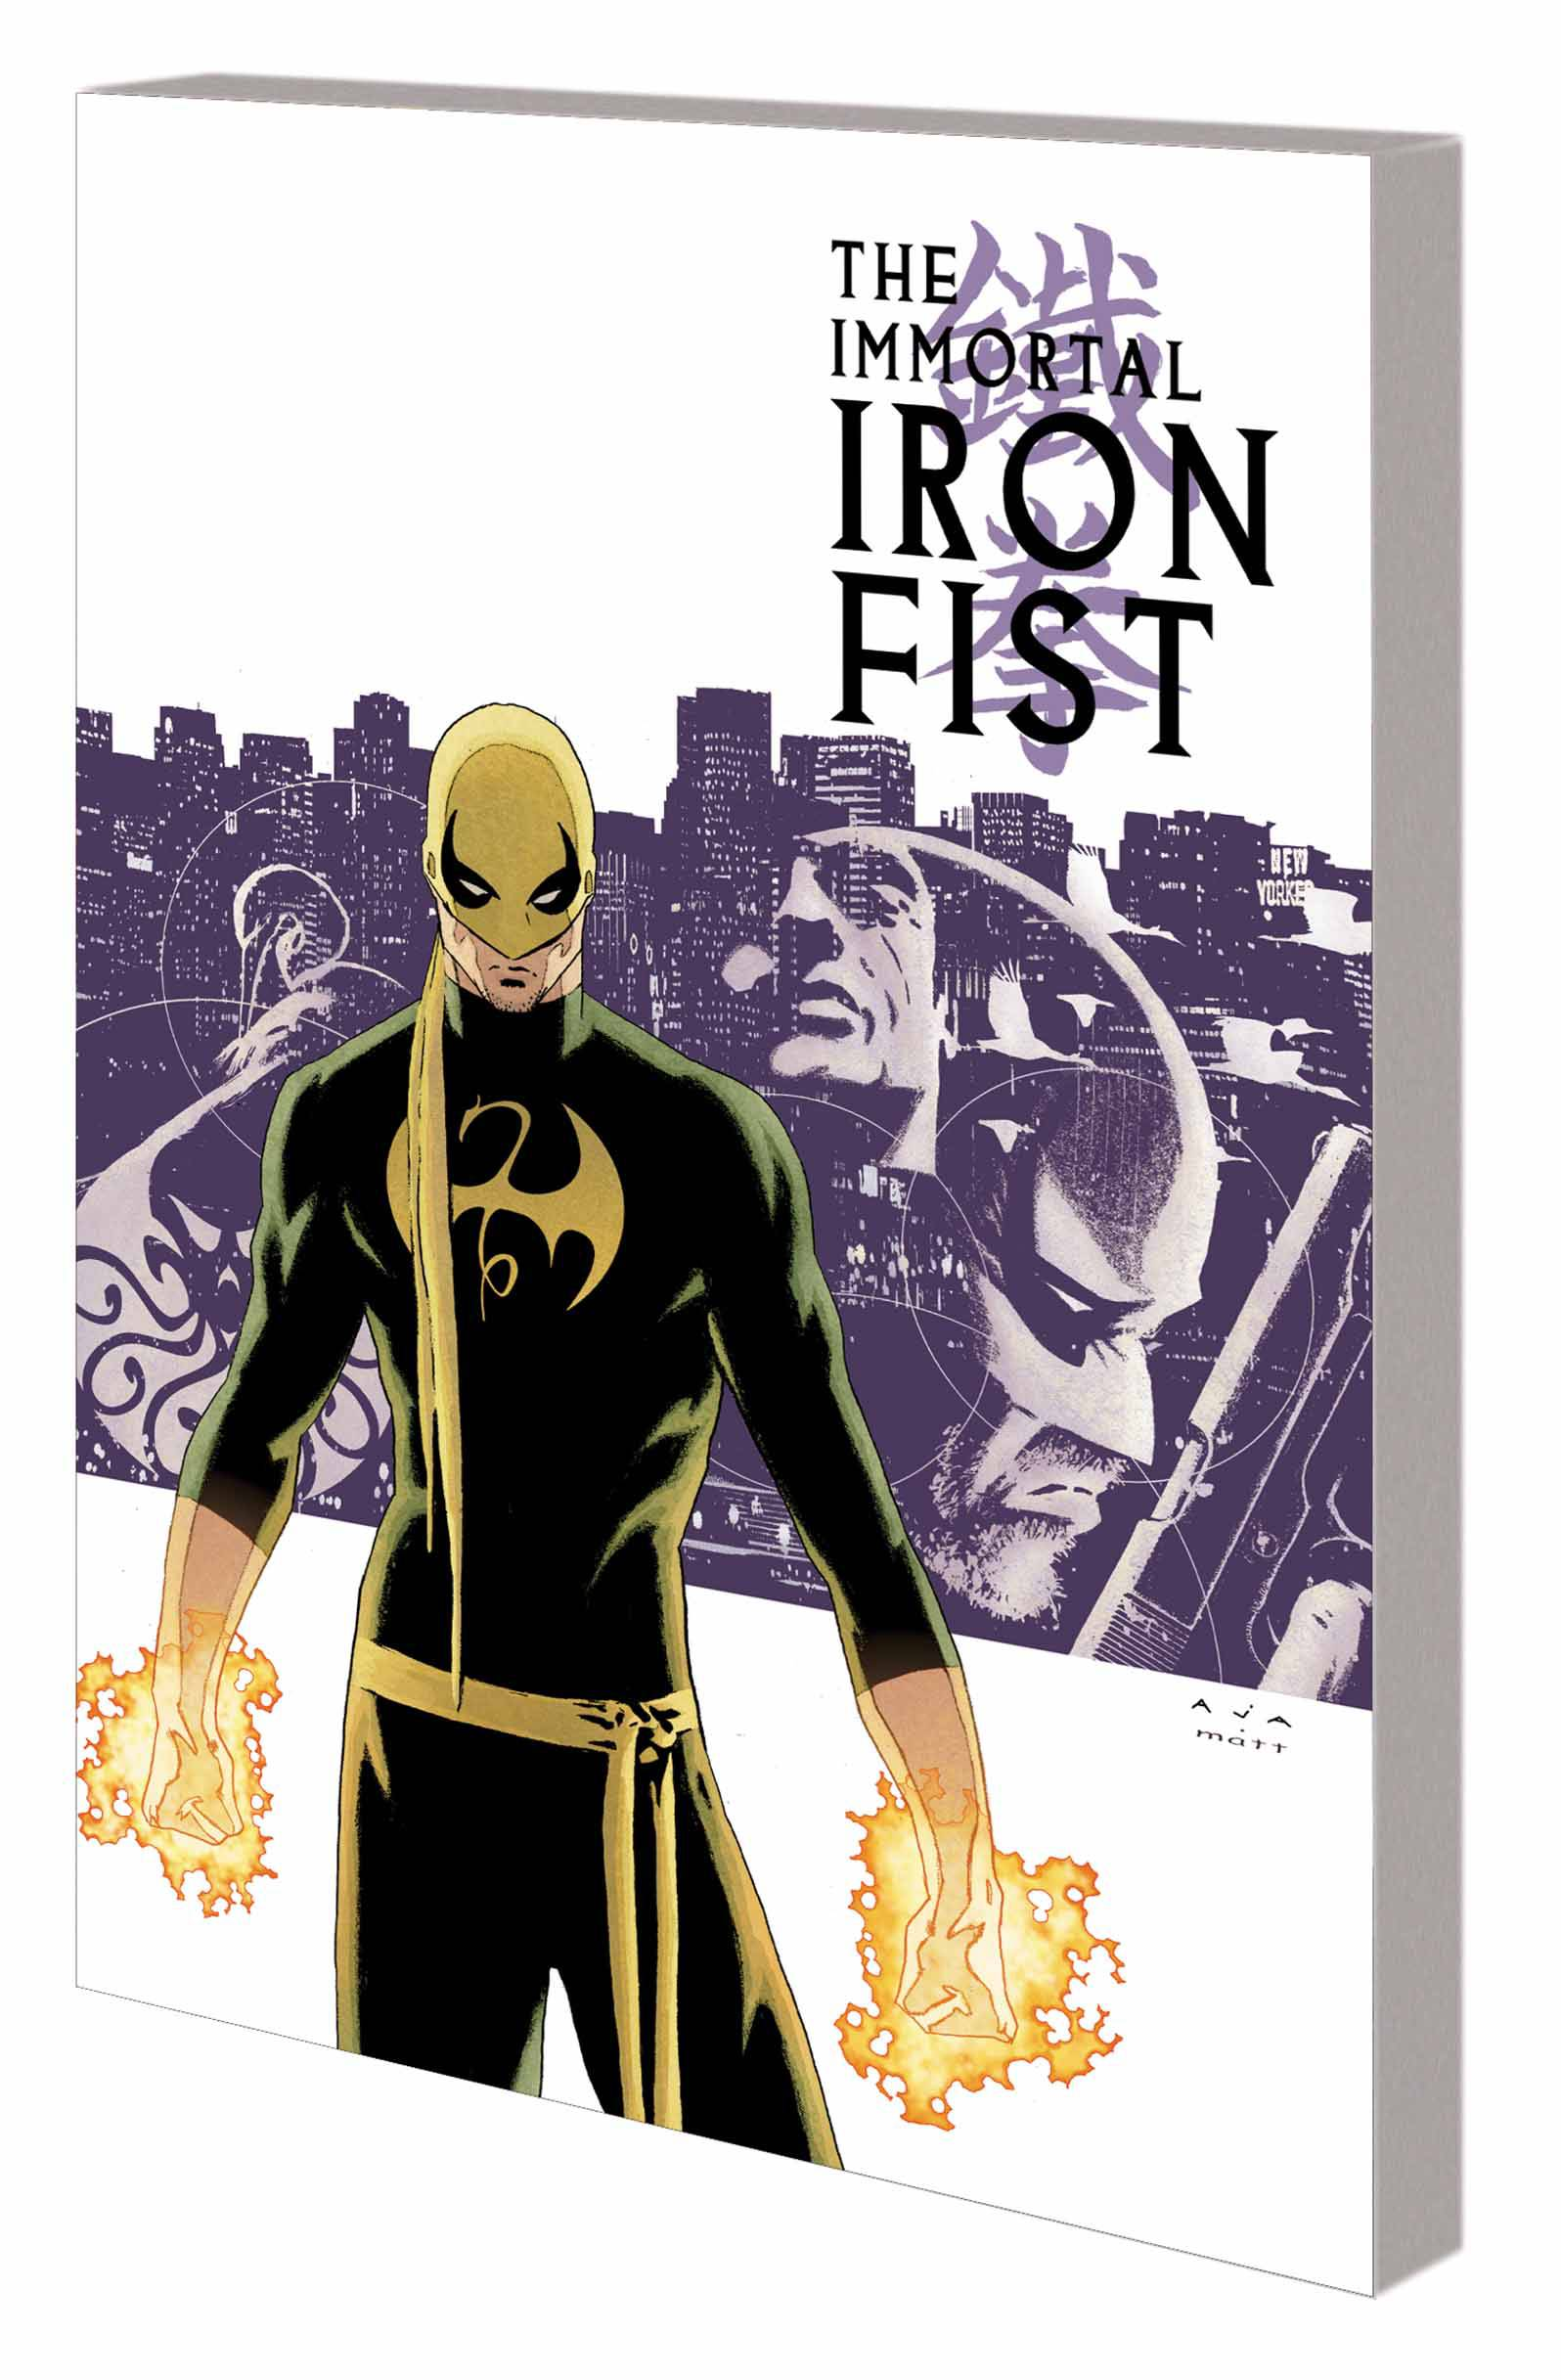 IMMORTAL IRON FIST: THE COMPLETE COLLECTION VOL 01